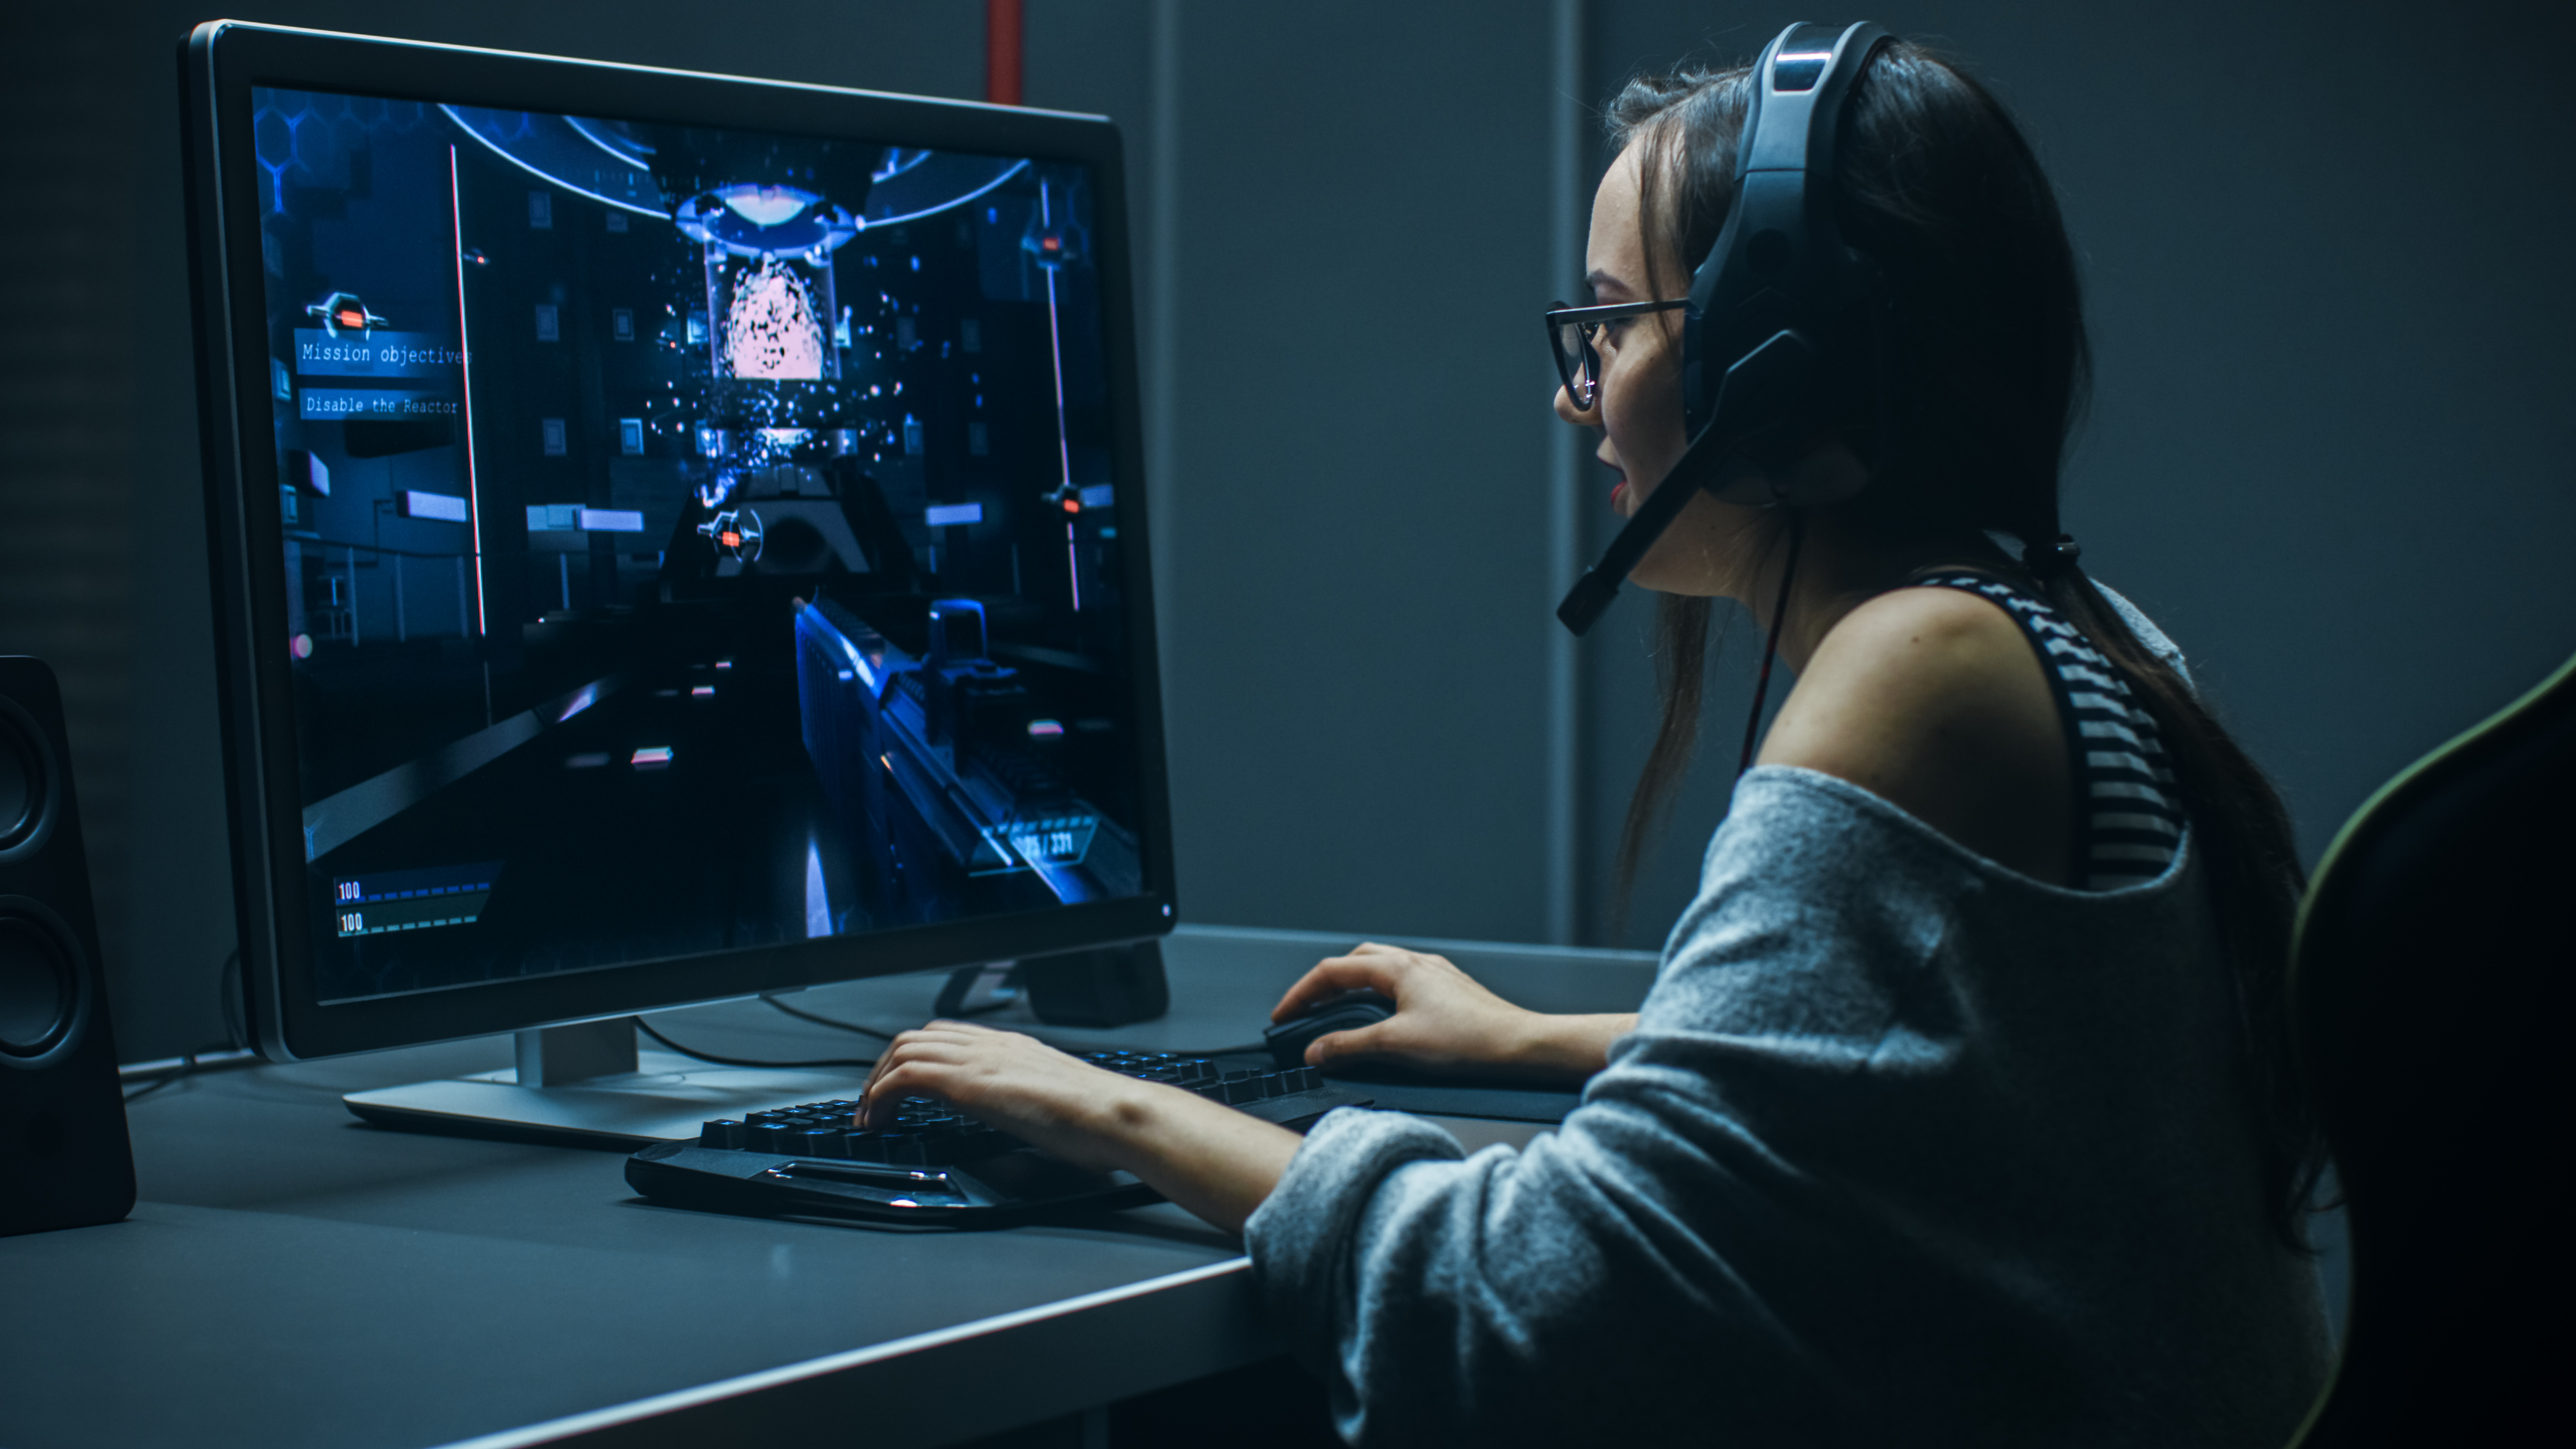 83432d1f24f Female gamer playing on a large computer monitor with keyboard, mouse and  her headset on